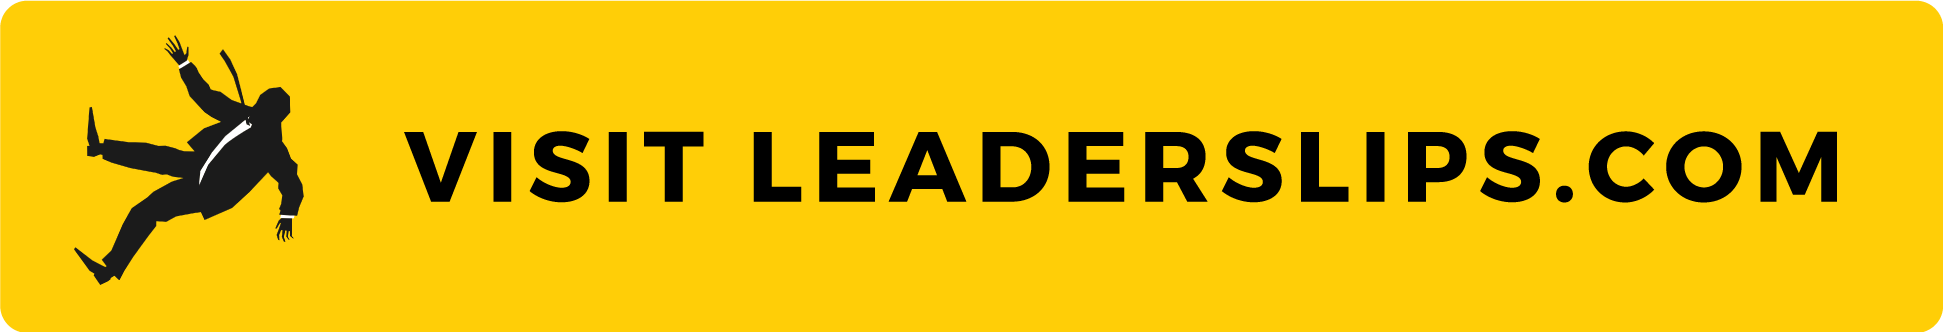 leaderslips-button-2.png